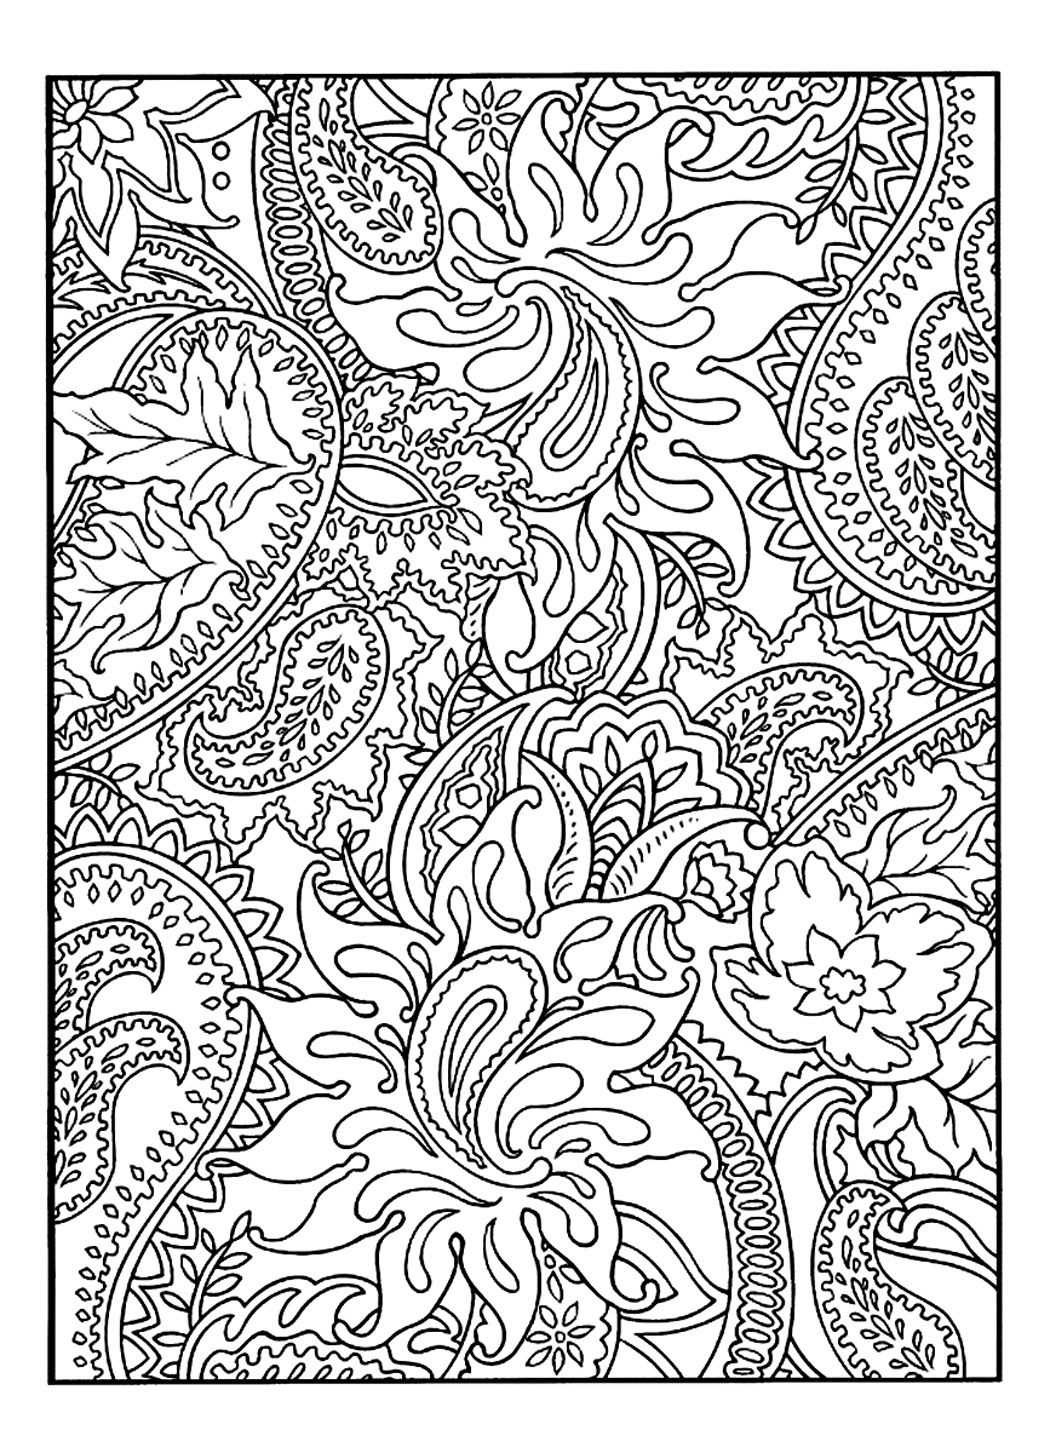 Colorama Coloring Pages  Download 15h - Free Download